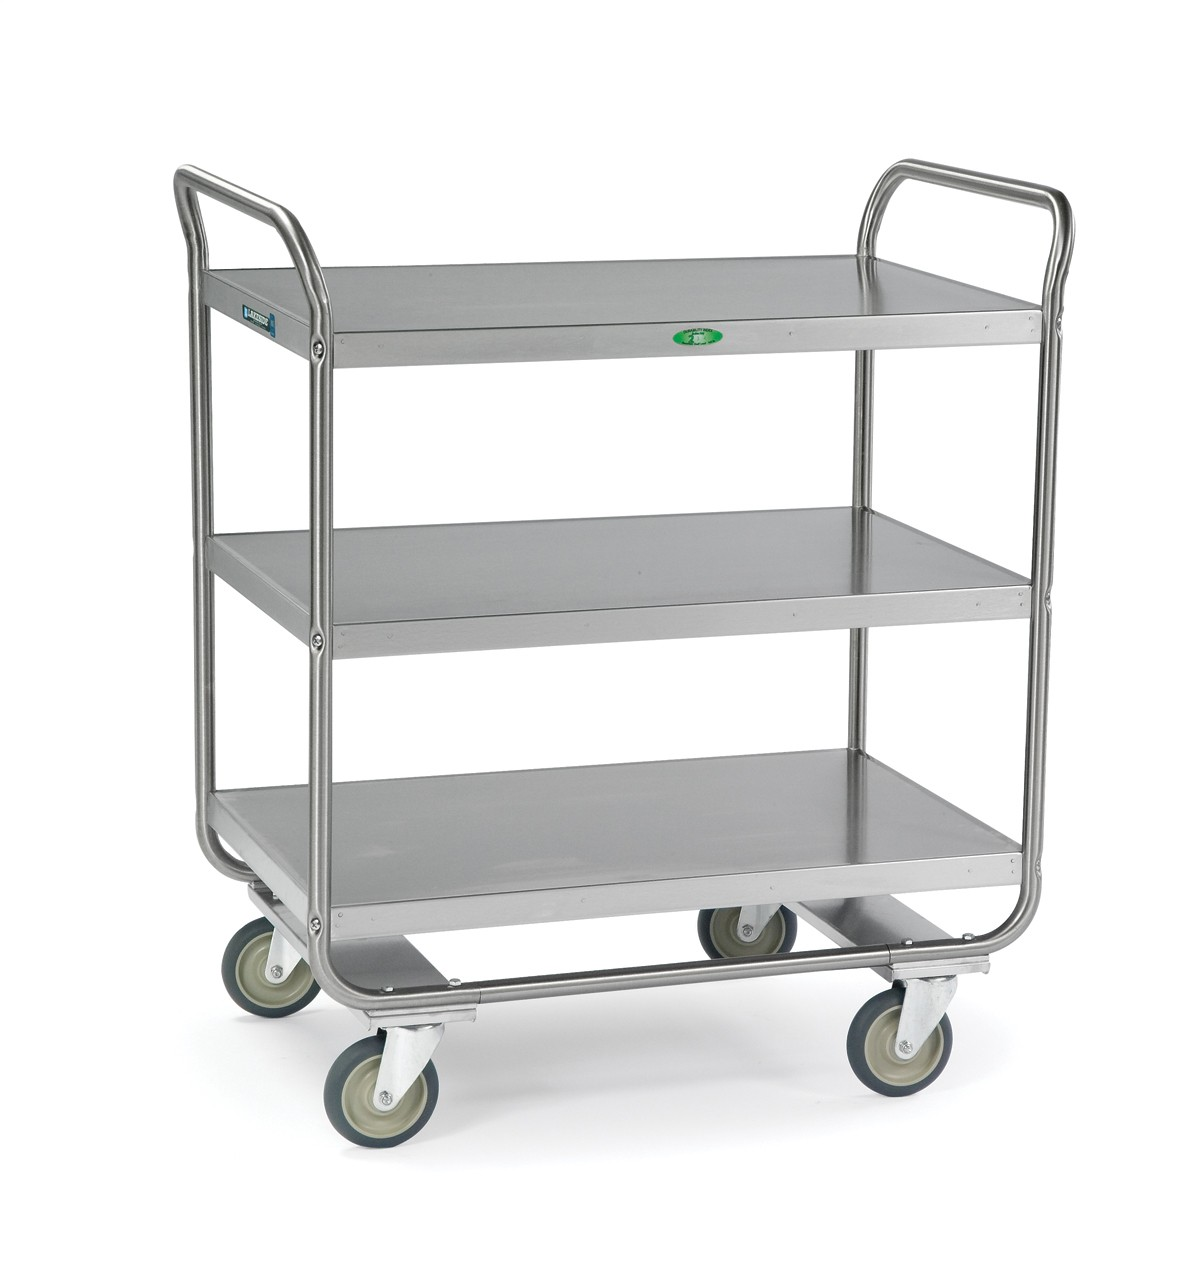 Tubular Design Utility Cart - 500 lbs Capacity